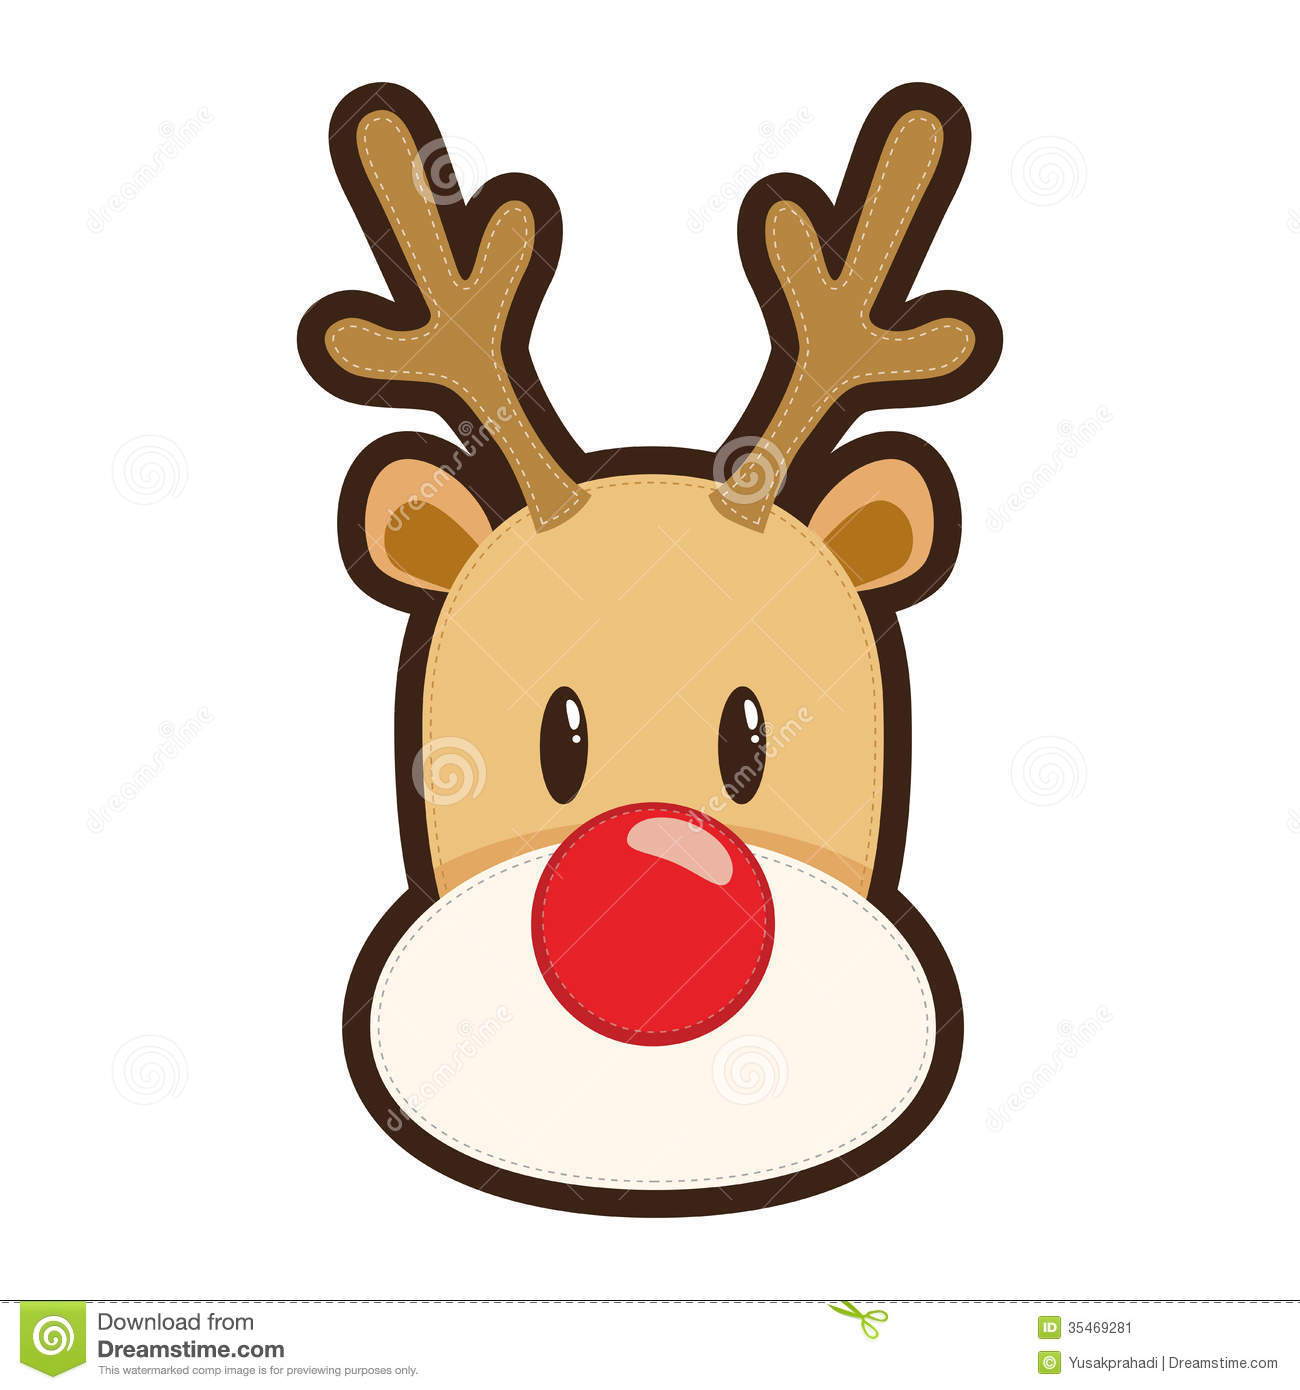 Cartoon Illustration Of Rudolph The Red -Cartoon Illustration Of Rudolph The Red Nosed Reindeer White-13